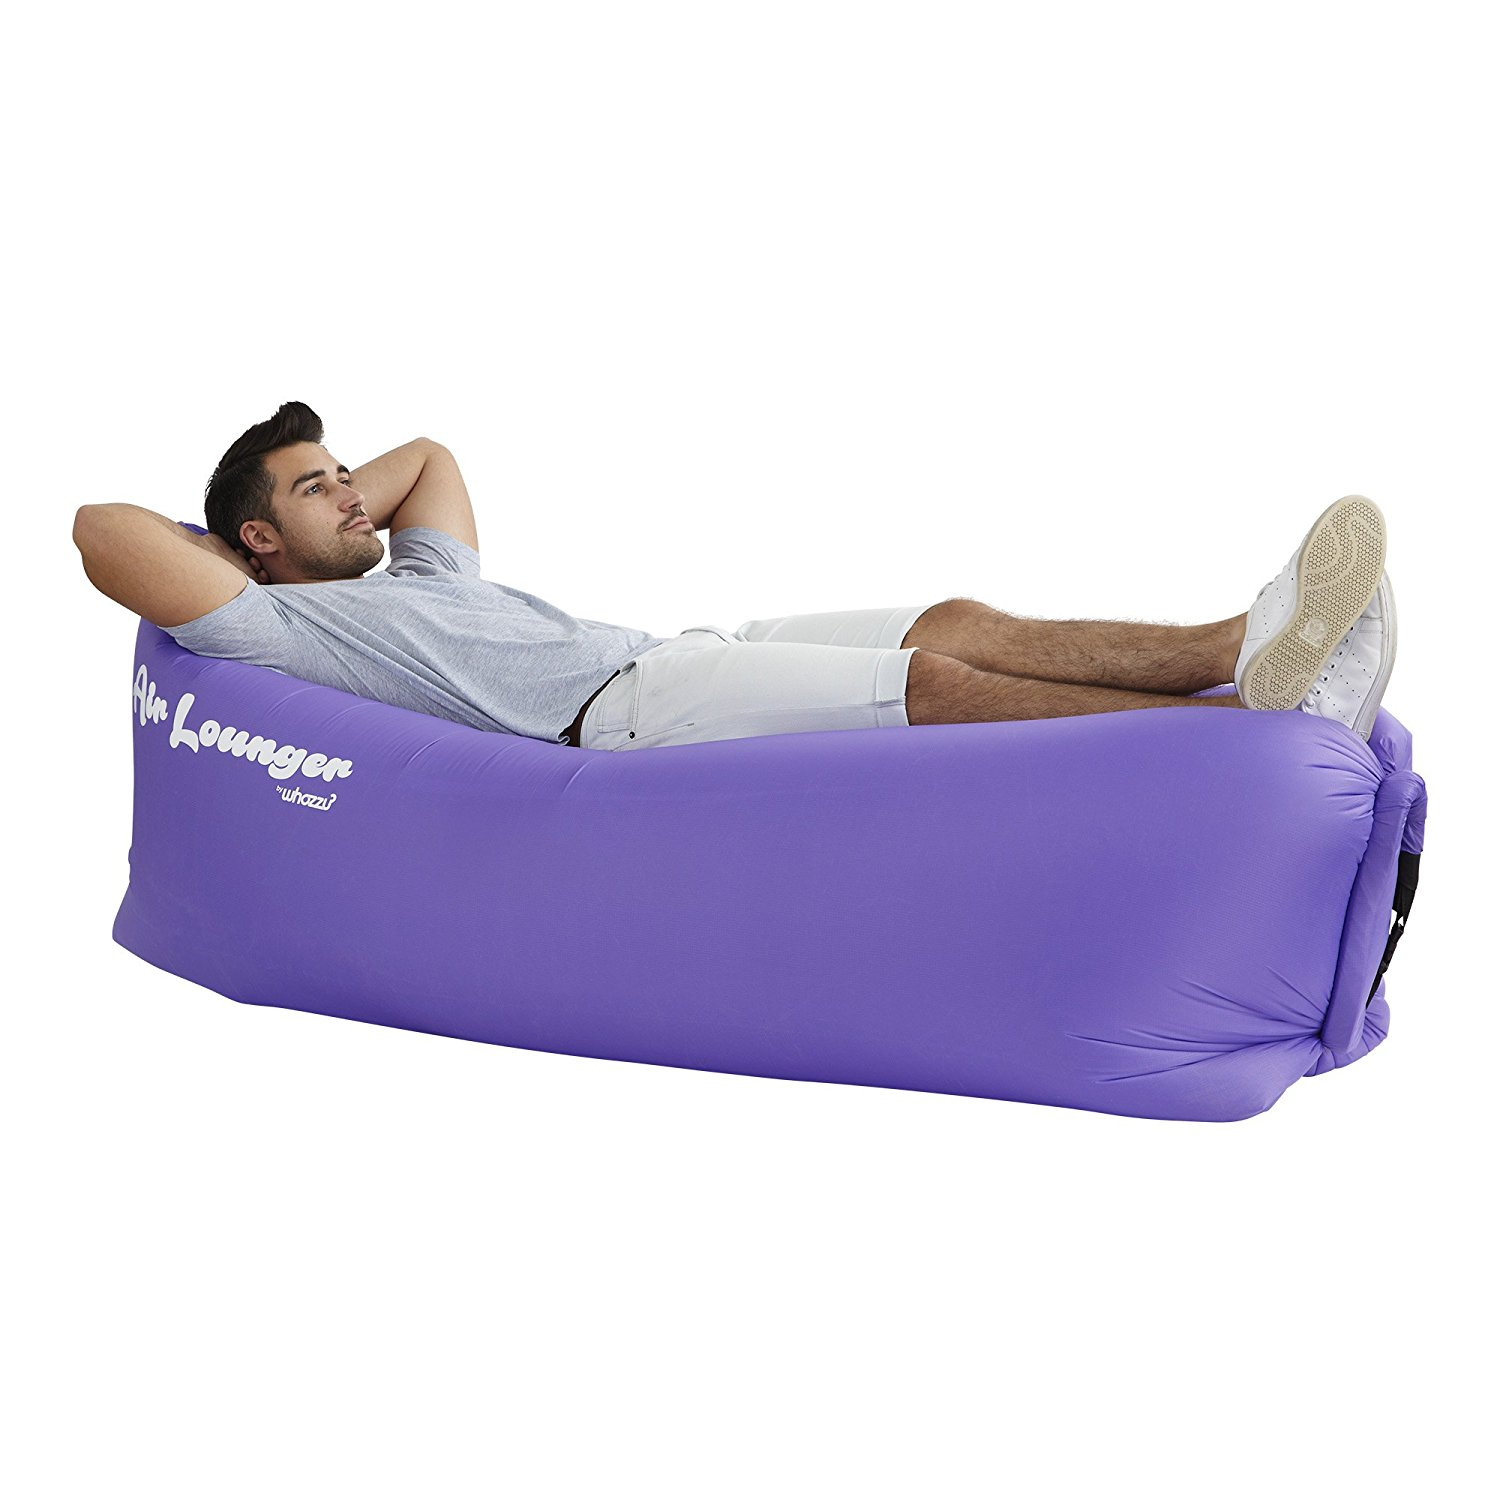 Air Lounger with bag